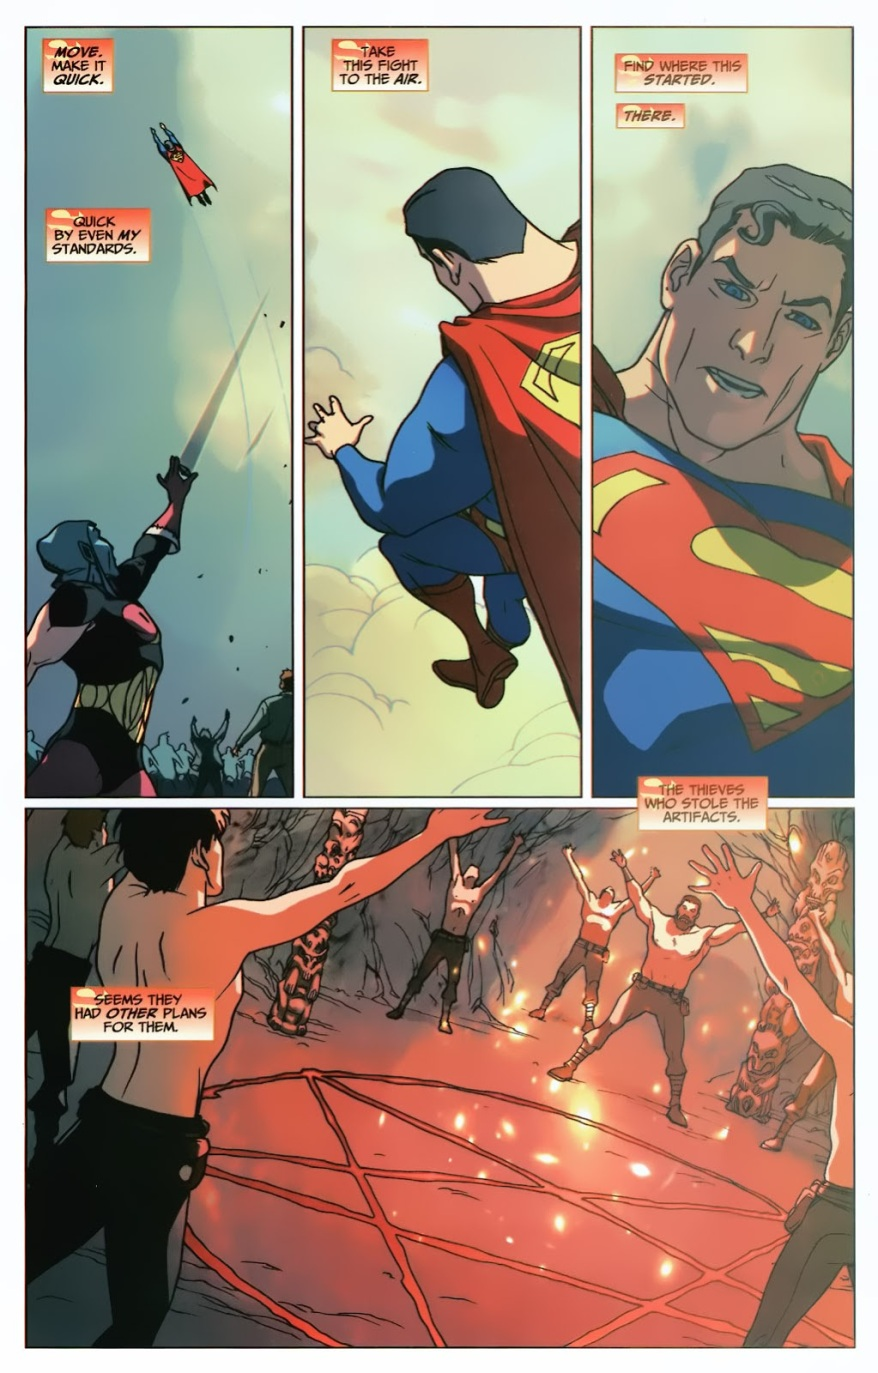 Superman VS Eclipso (First Thunder)